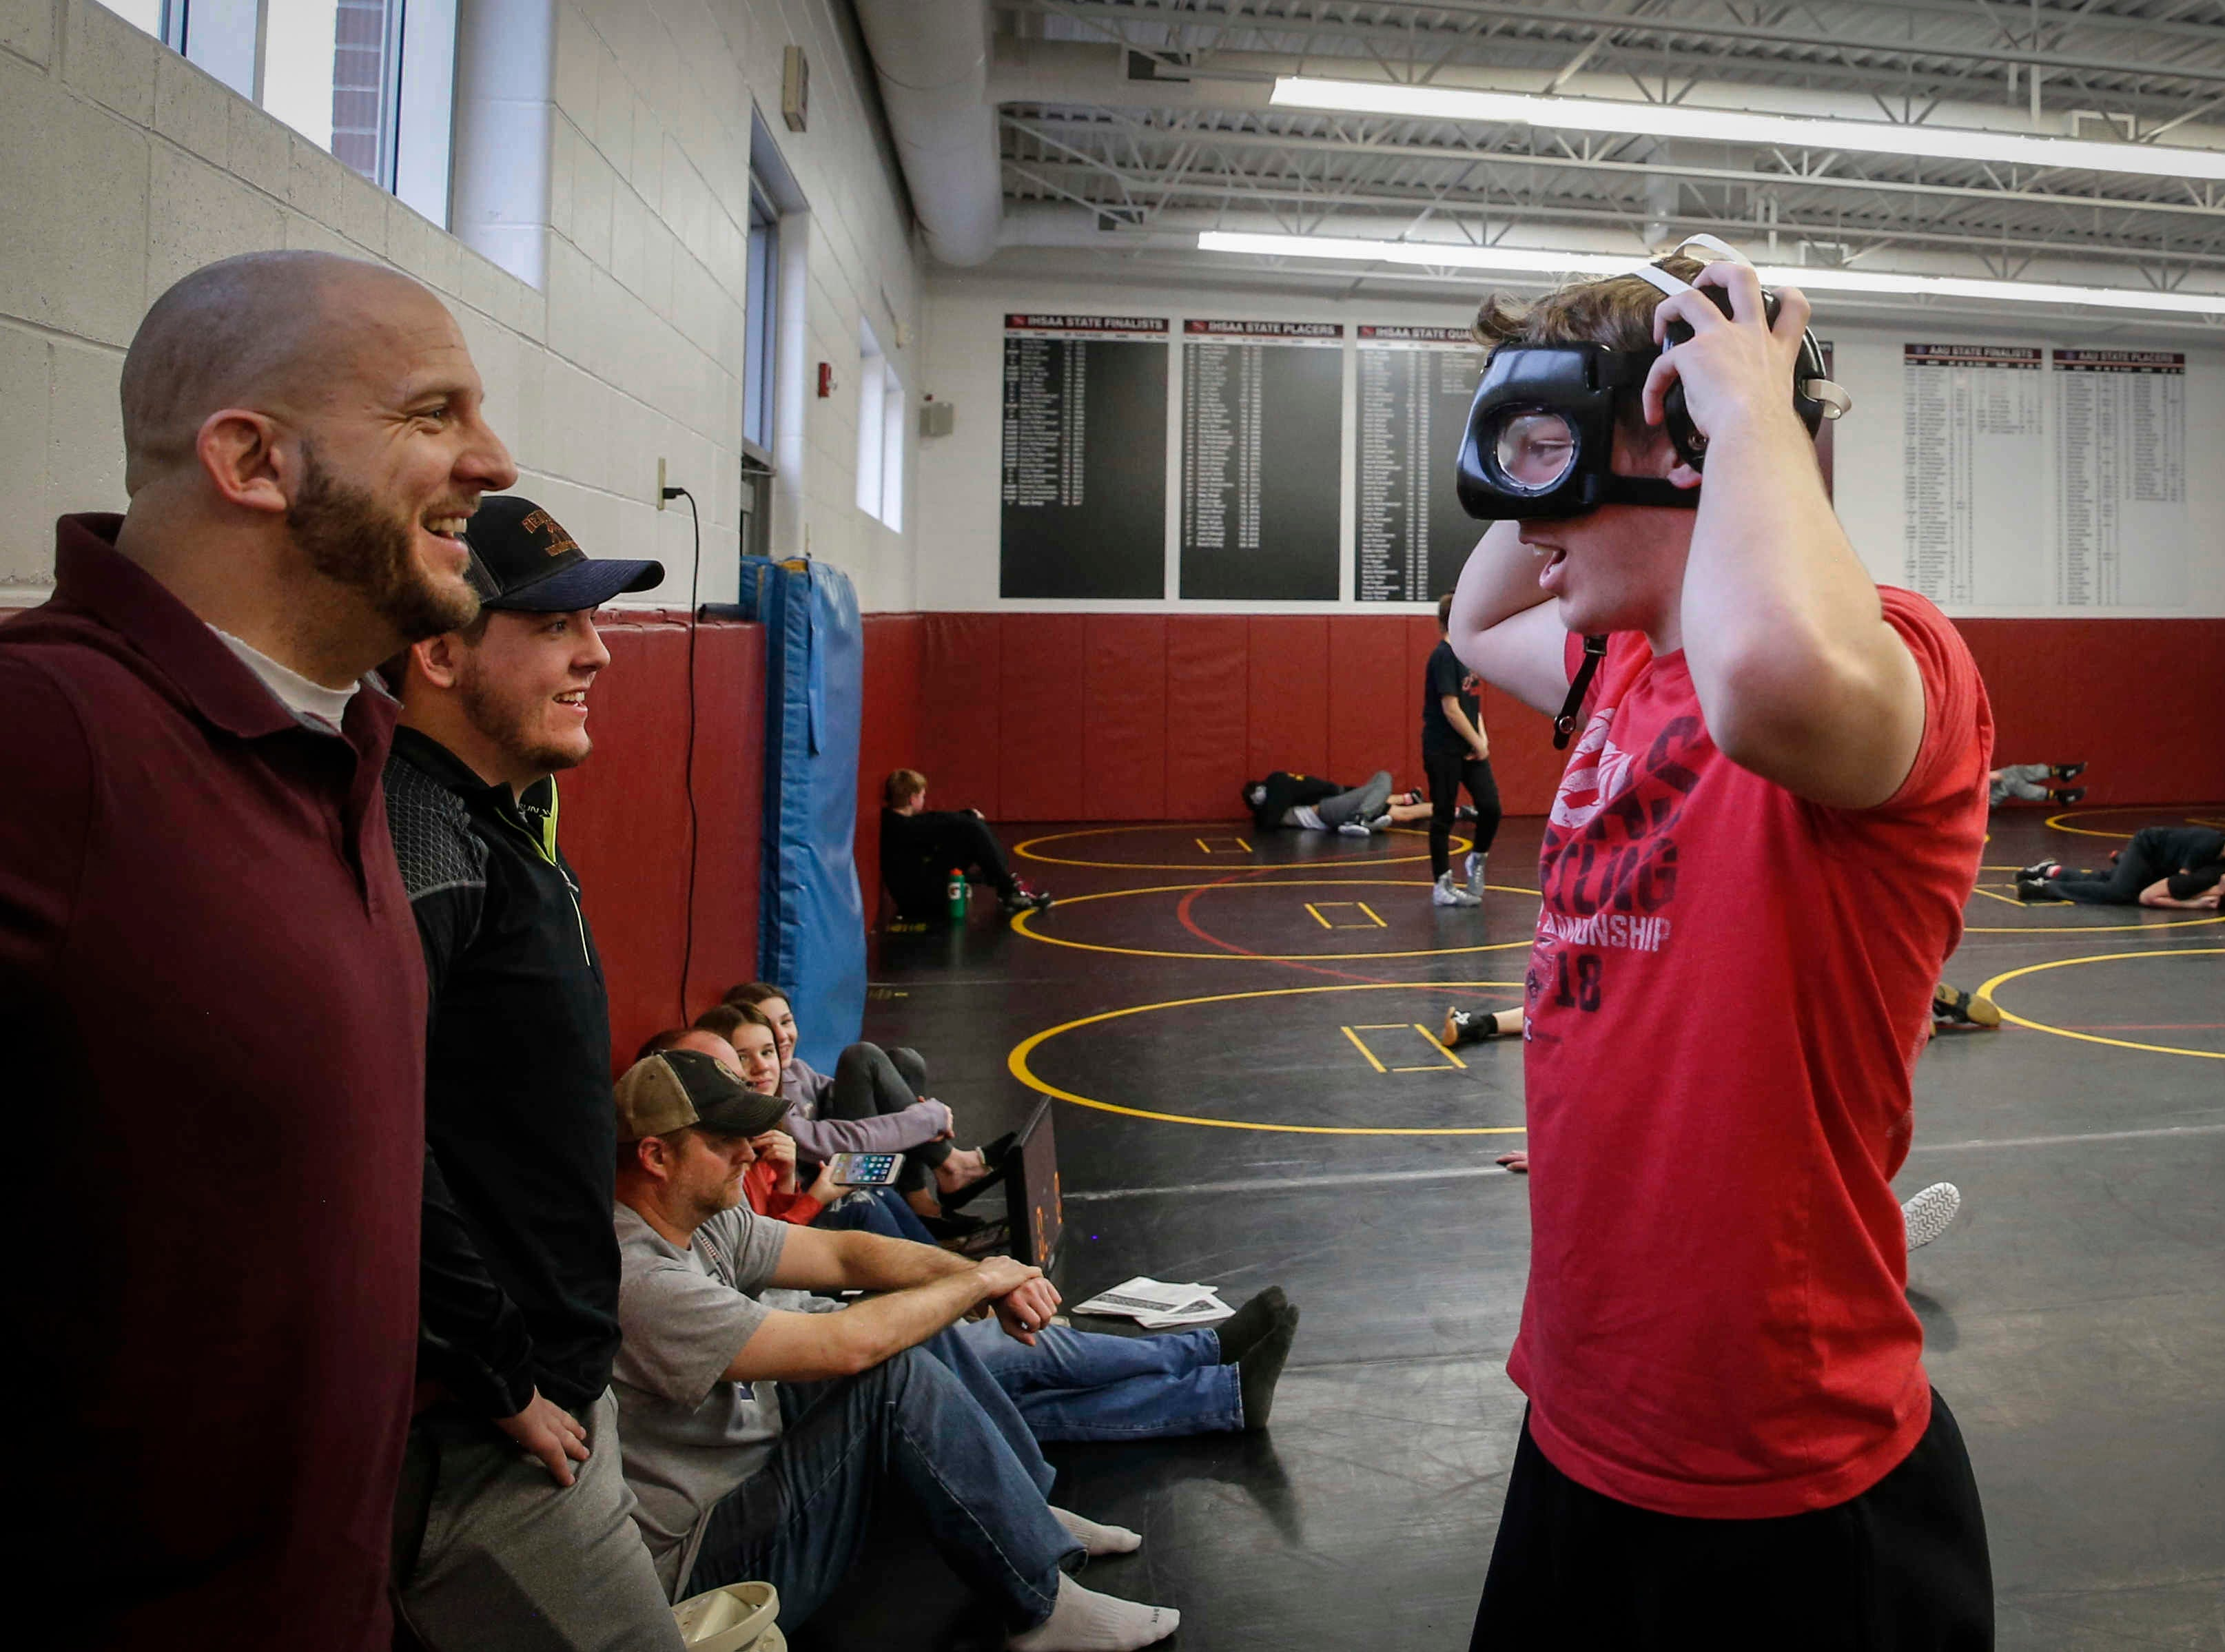 Denver sophomore Cam Krueger, right, jokes with his father, head wrestling coach Chris Krueger, and brother Cael, prior to running drills during wrestling practice at Denver High School in Denver on Tuesday, Jan. 15, 2019. Krueger hasn't let the fact that he is legally blind step in the way of his passion for wrestling.